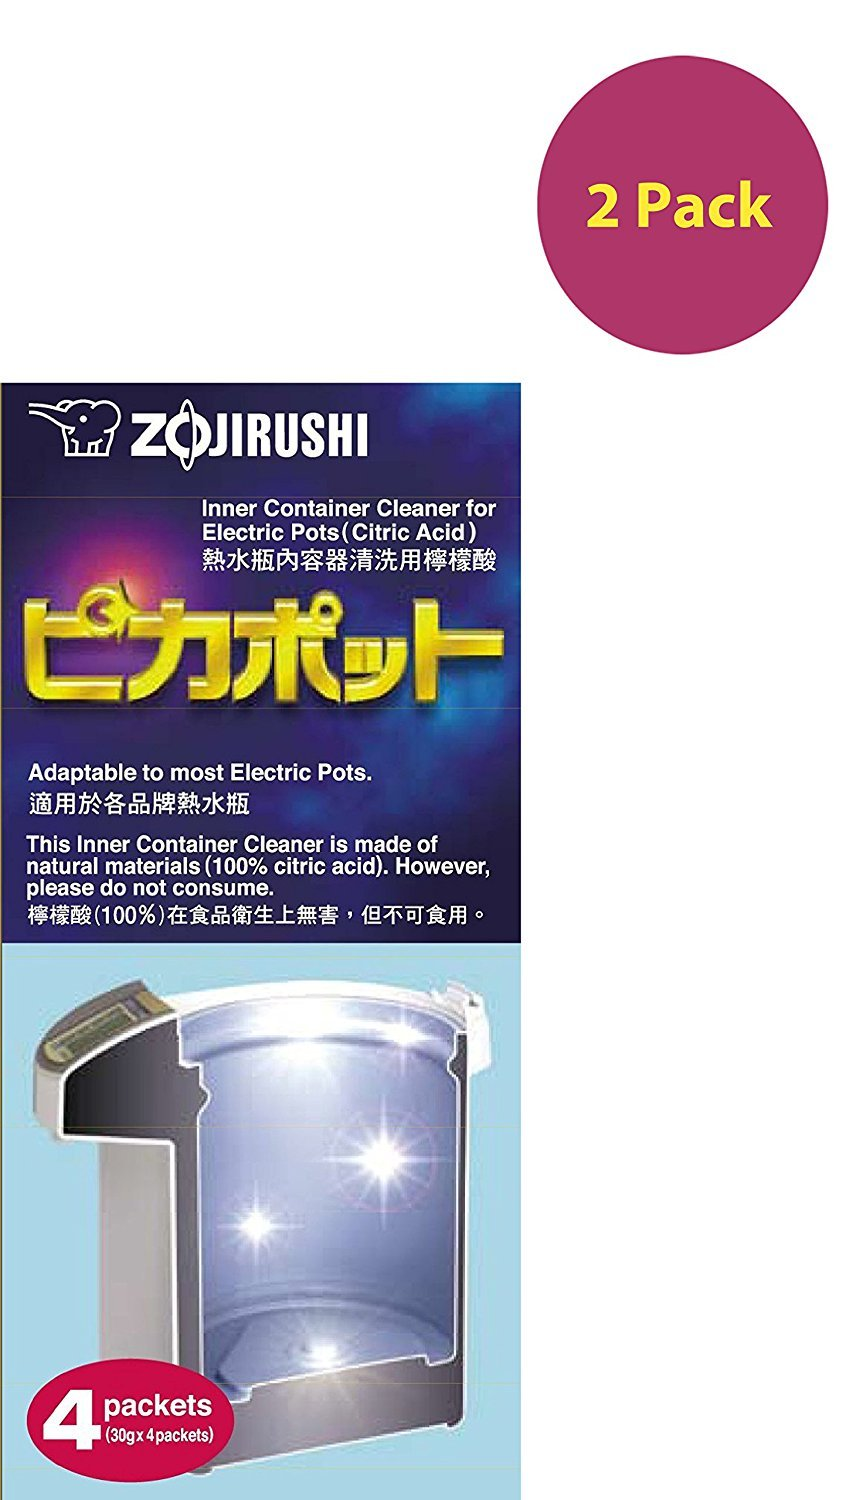 Zojirushi #CD-K03EJU Inner Container Cleaner for Electric Pots, 8 Packets